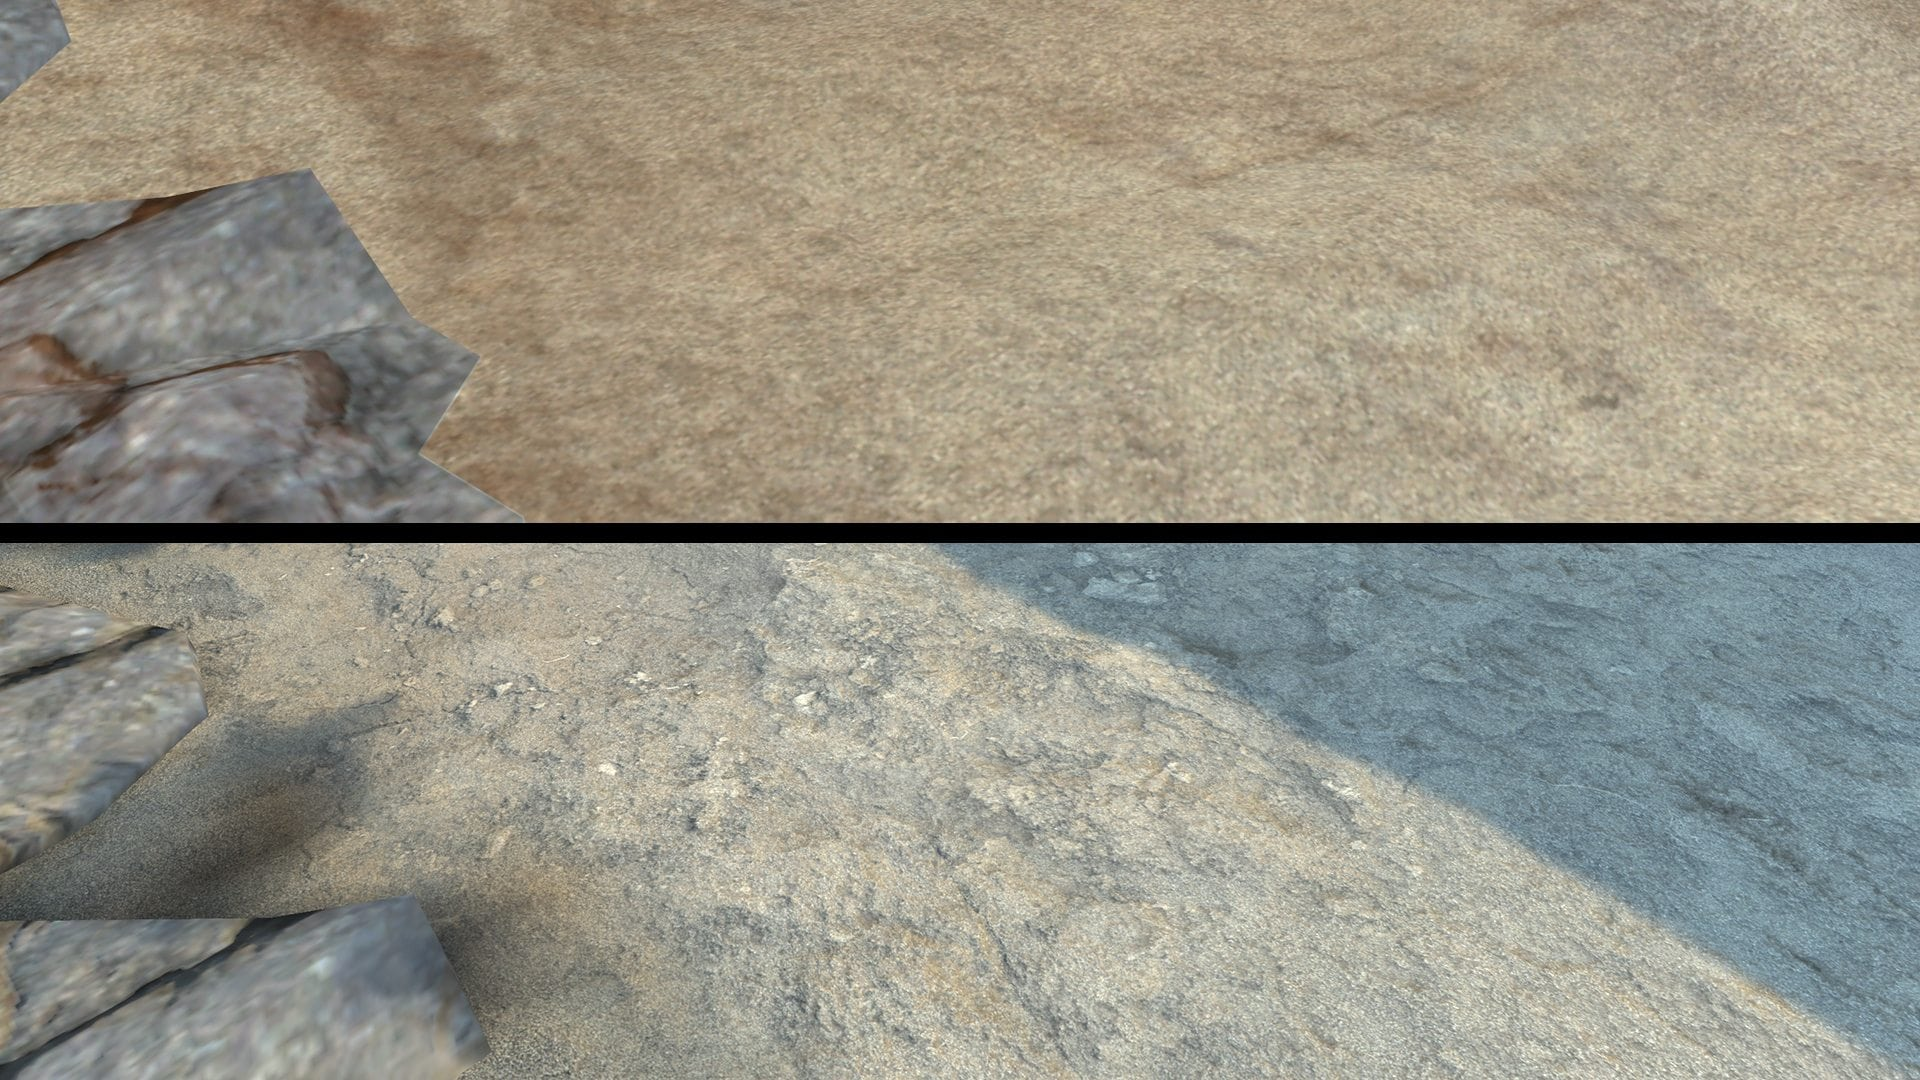 Image 15 - comparison of ground texture details; top - unique 8K texture, bottom - splat shader with three 1K maps;